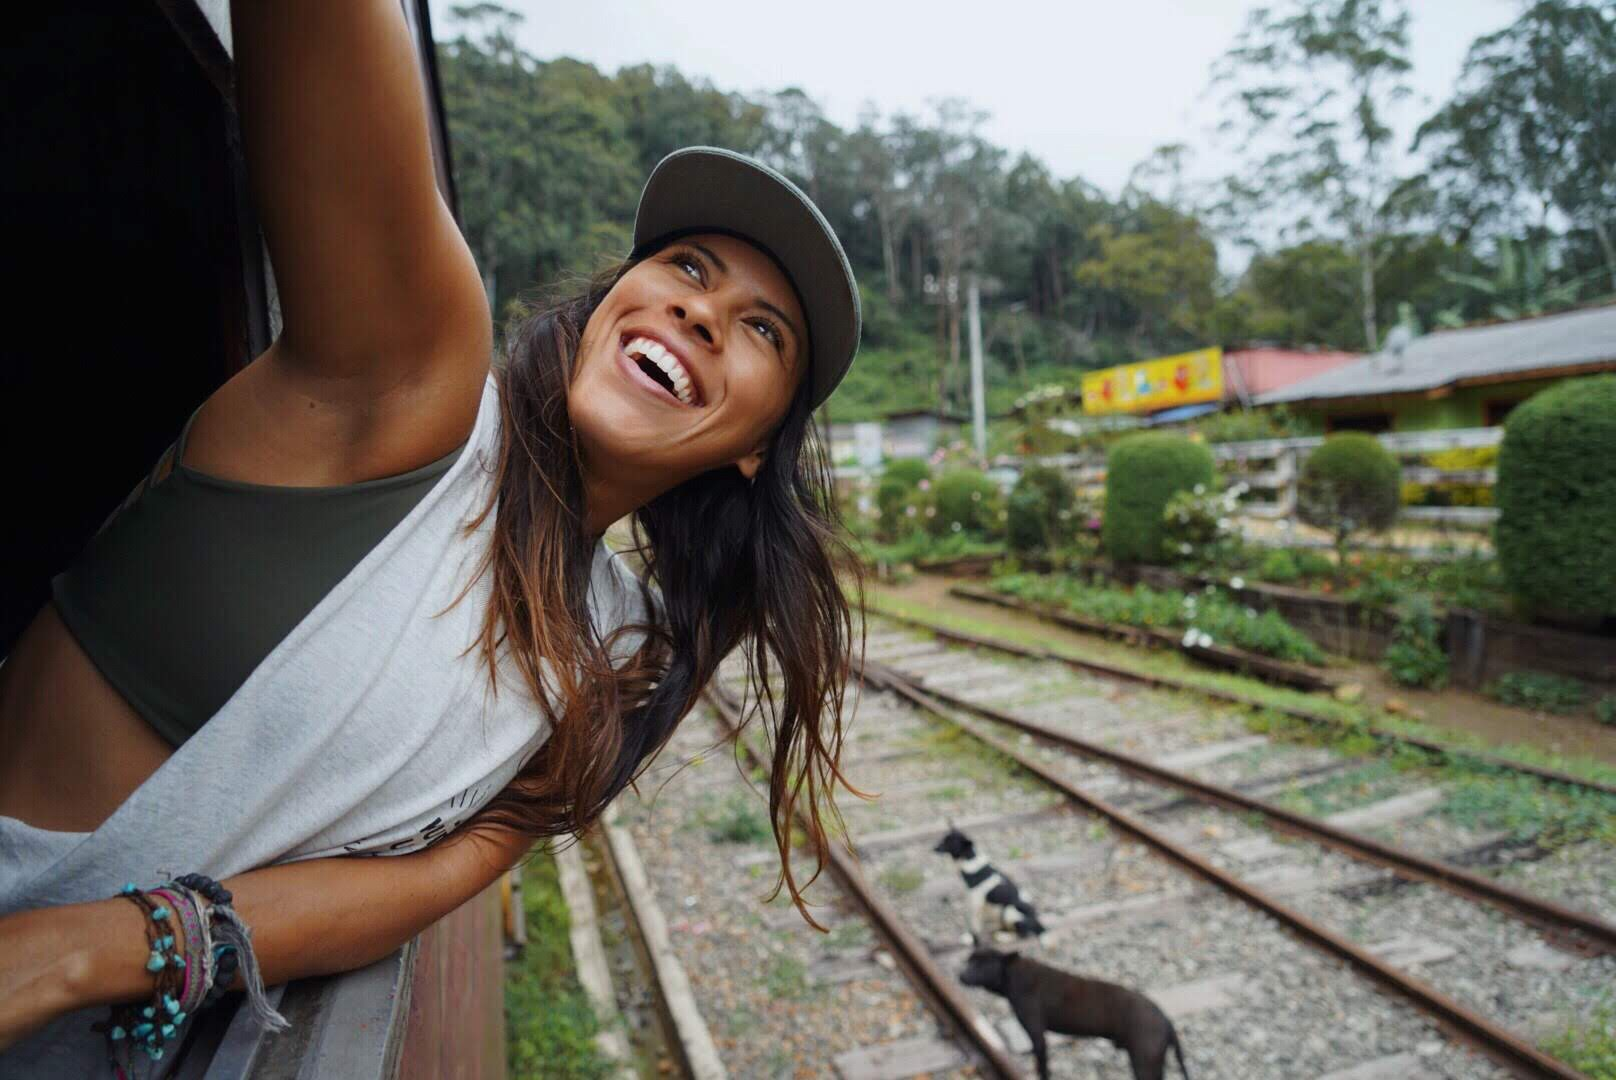 Freedive instructor girl